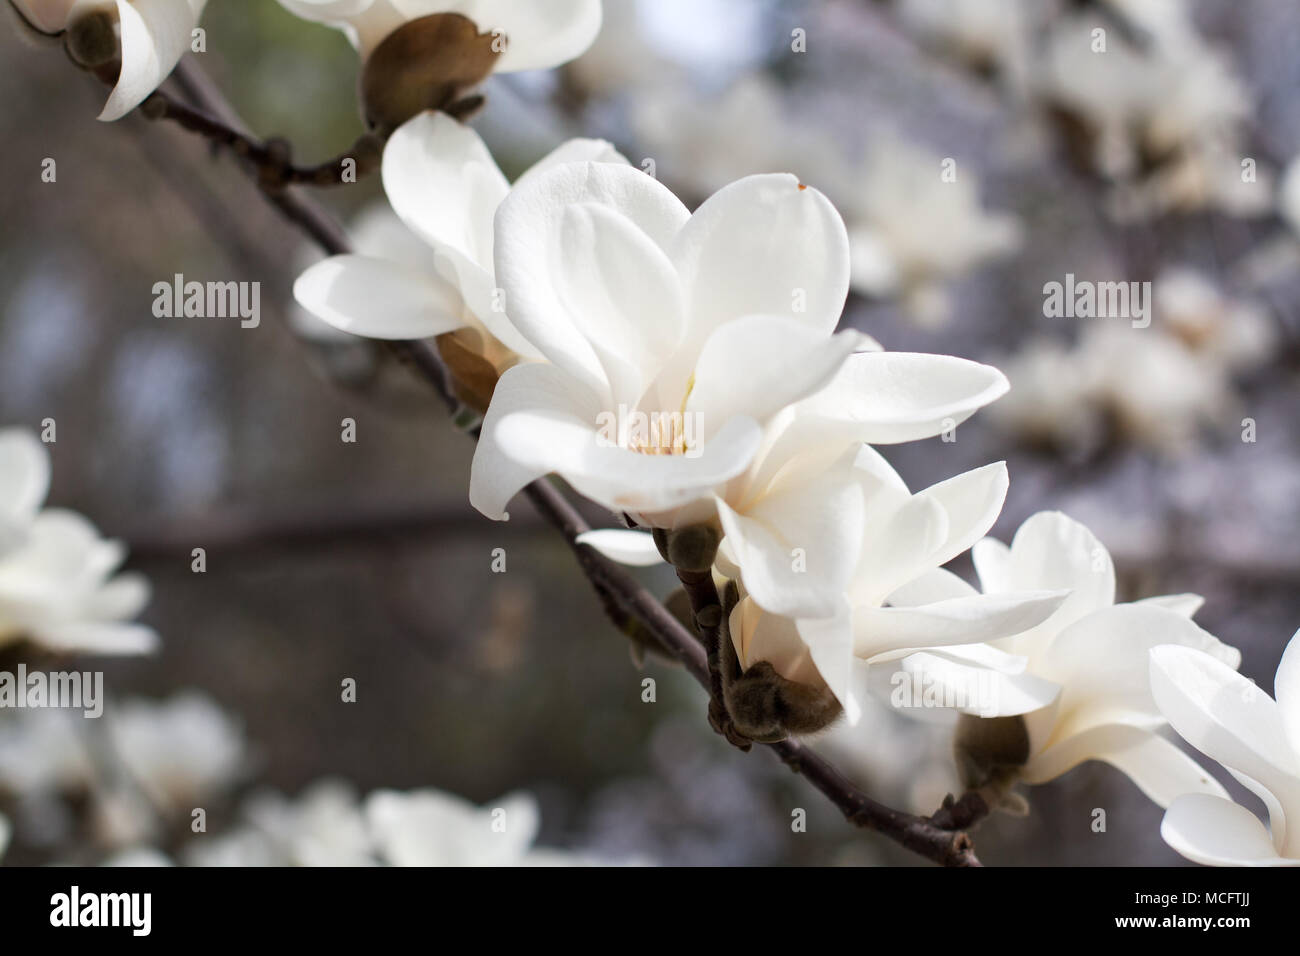 Branch With Blossoming White Magnolia Flowers Close Up Stock Photo